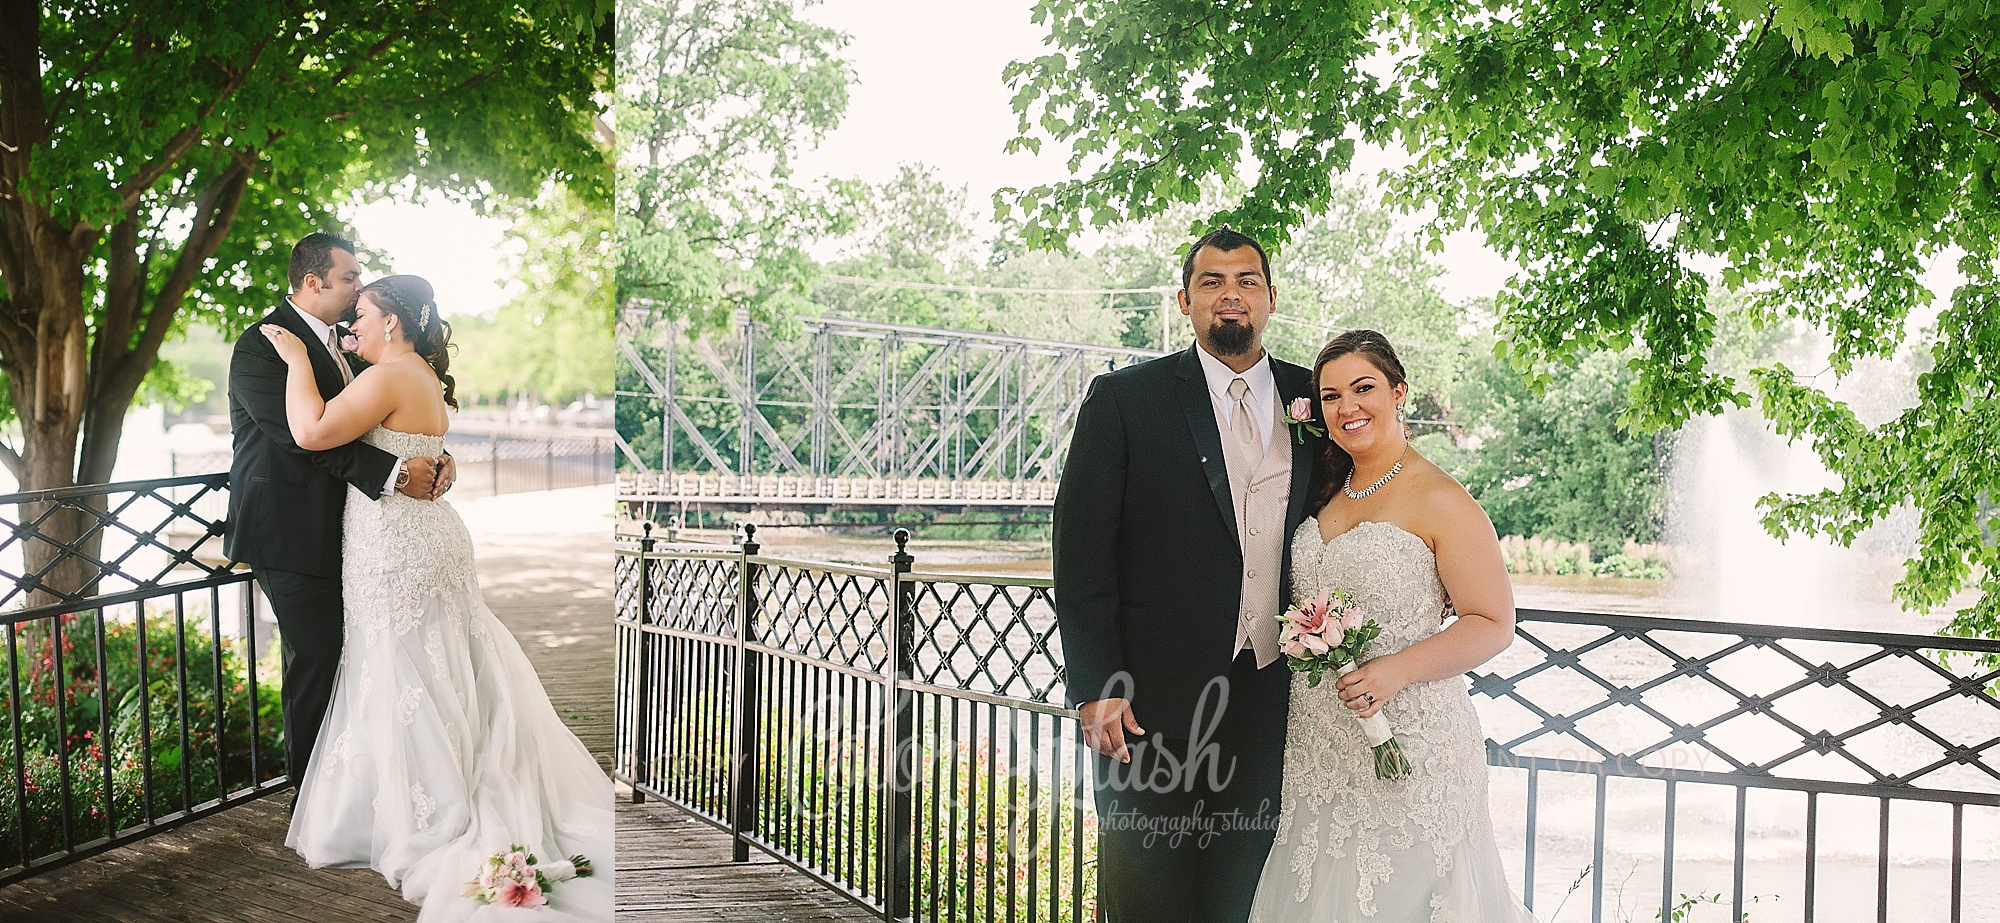 kalamazoo-backyard-wedding-photographer_0473